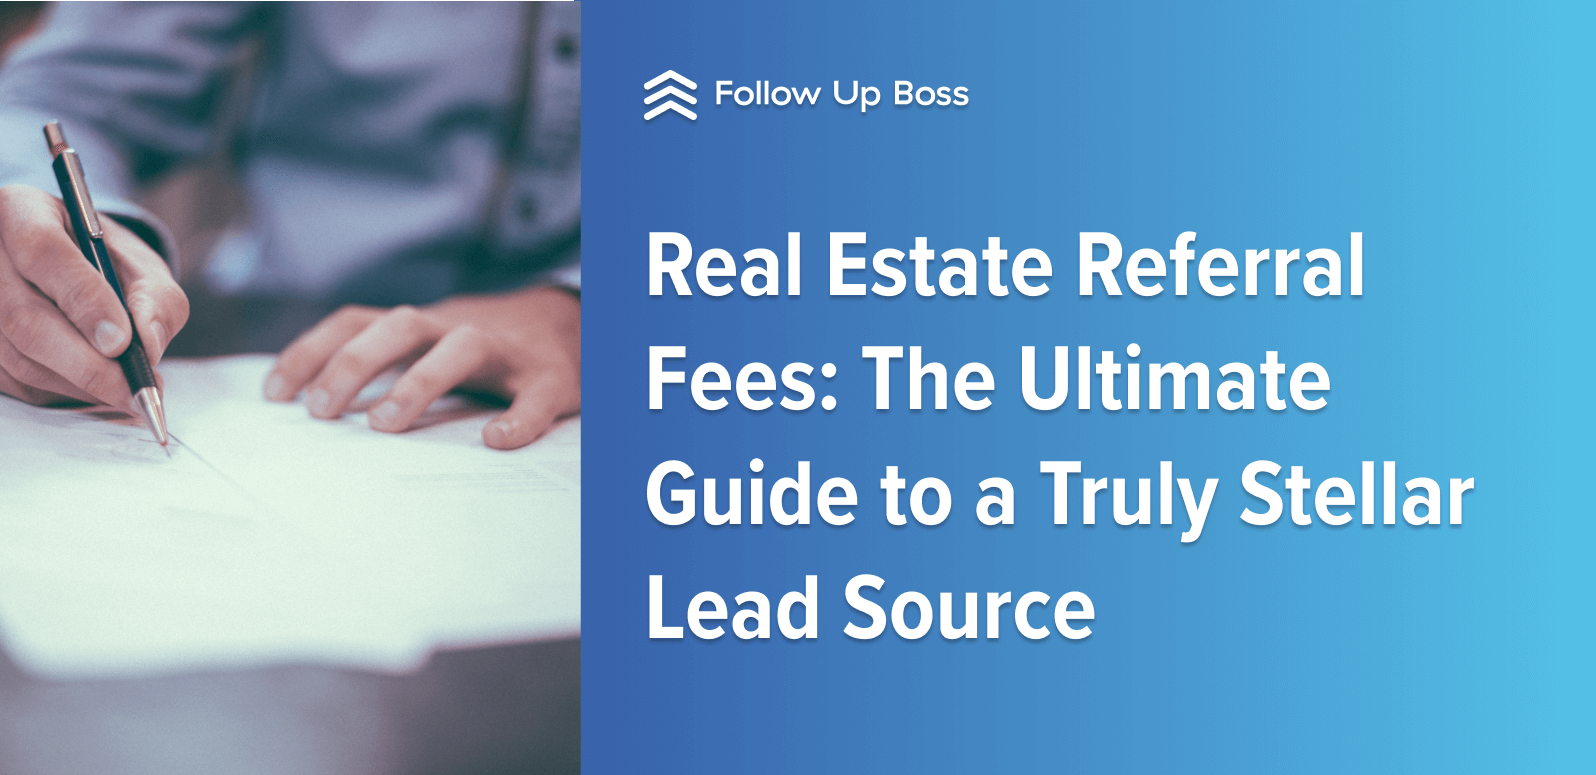 Real Estate Referral Fees: The Ultimate Guide to a Truly Stellar Lead Source